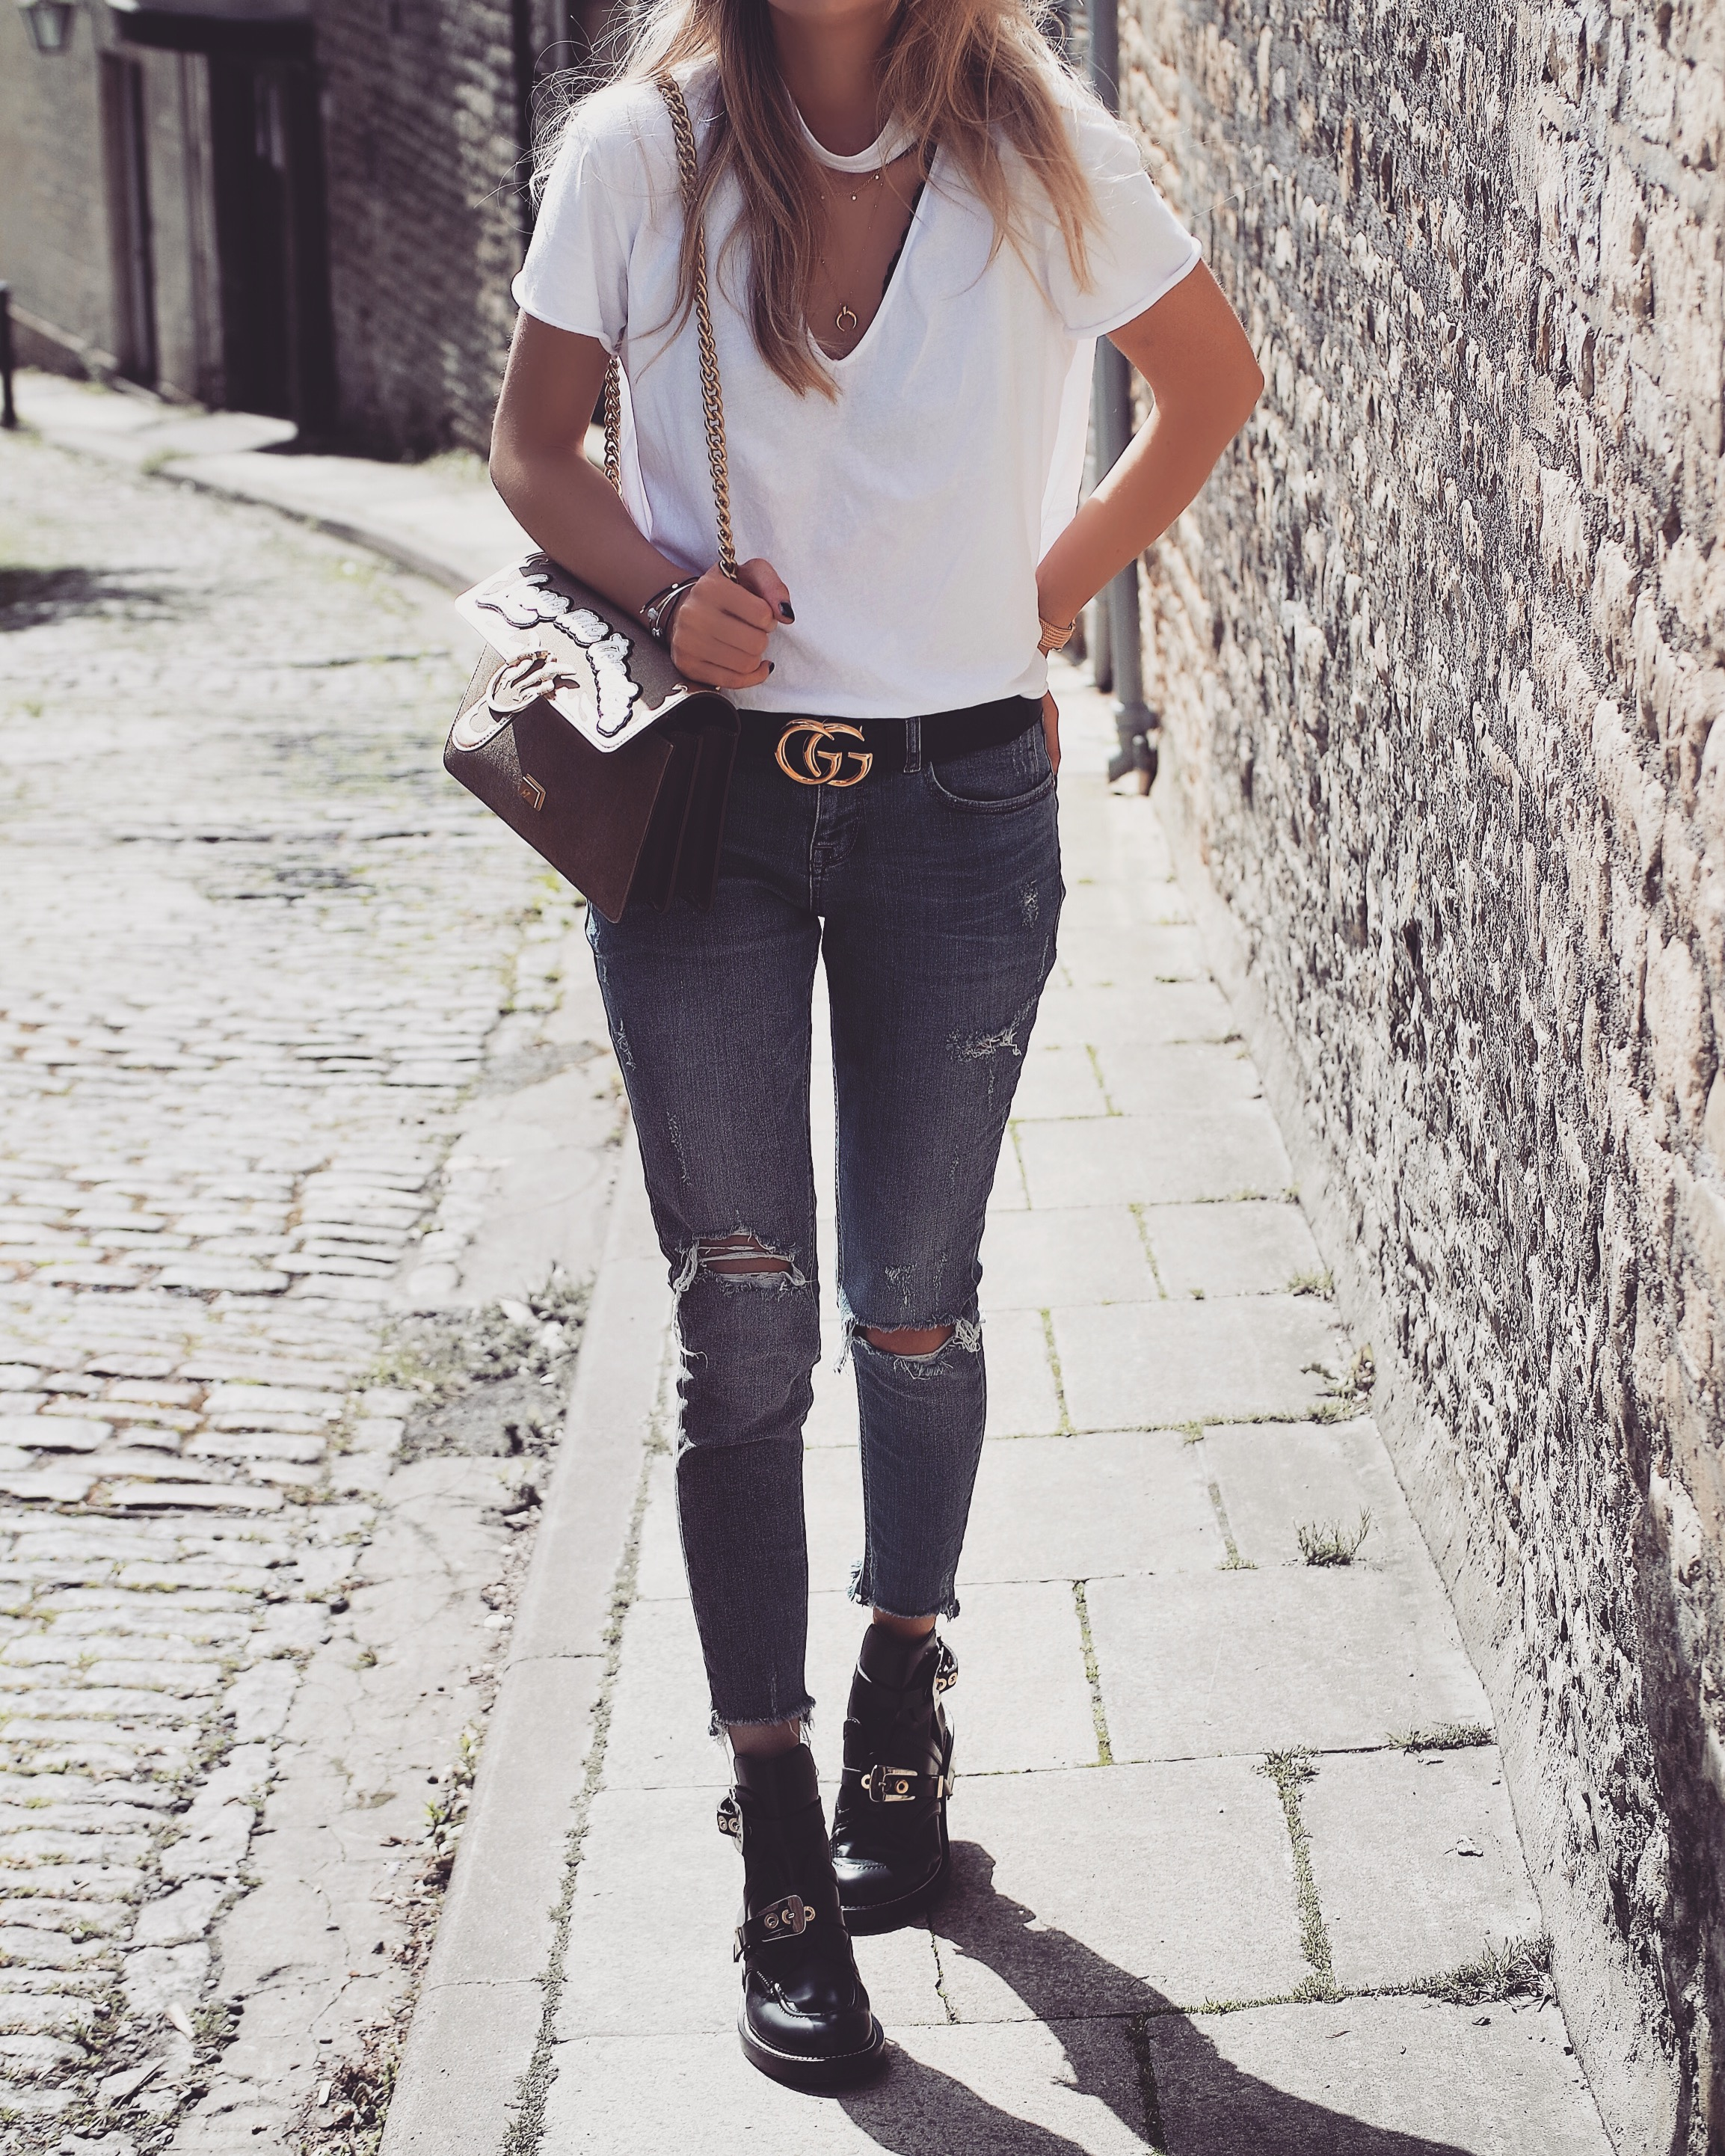 White Tee Street Style Shot Love Style Mindfulness Fashion Personal Style Blog